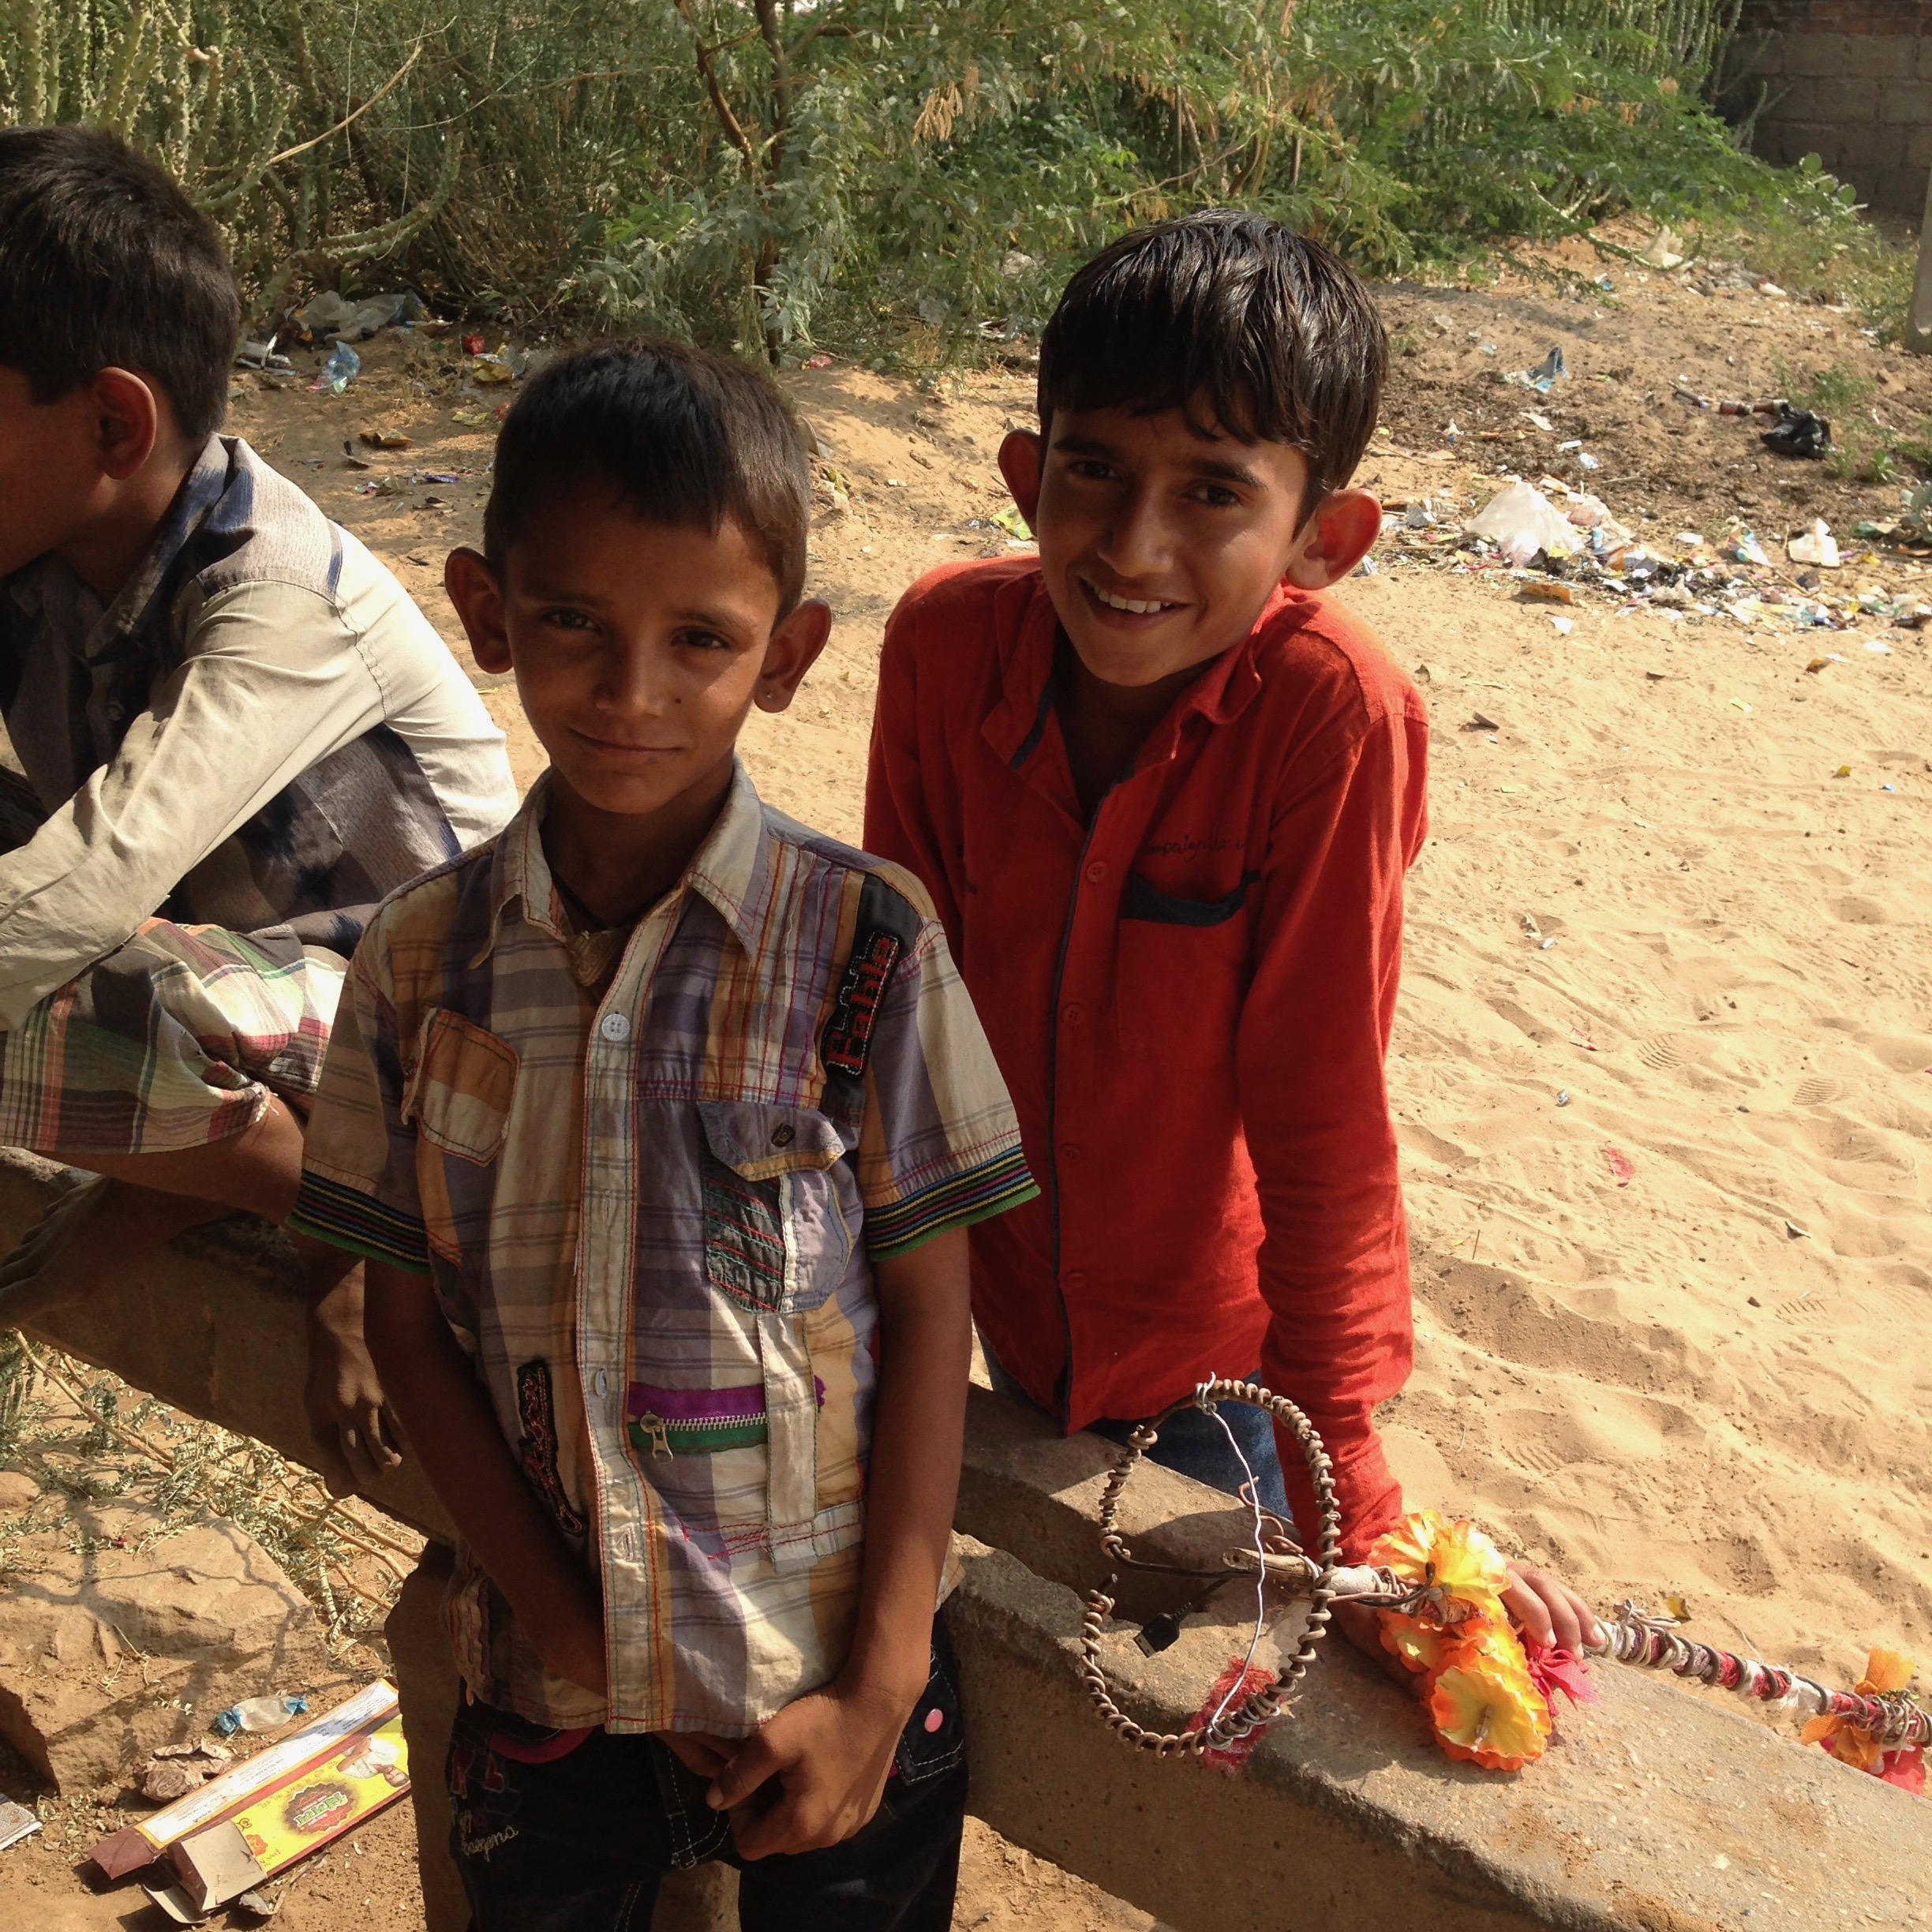 Boys - trainee pimps, Wadia village, Gujarat, India